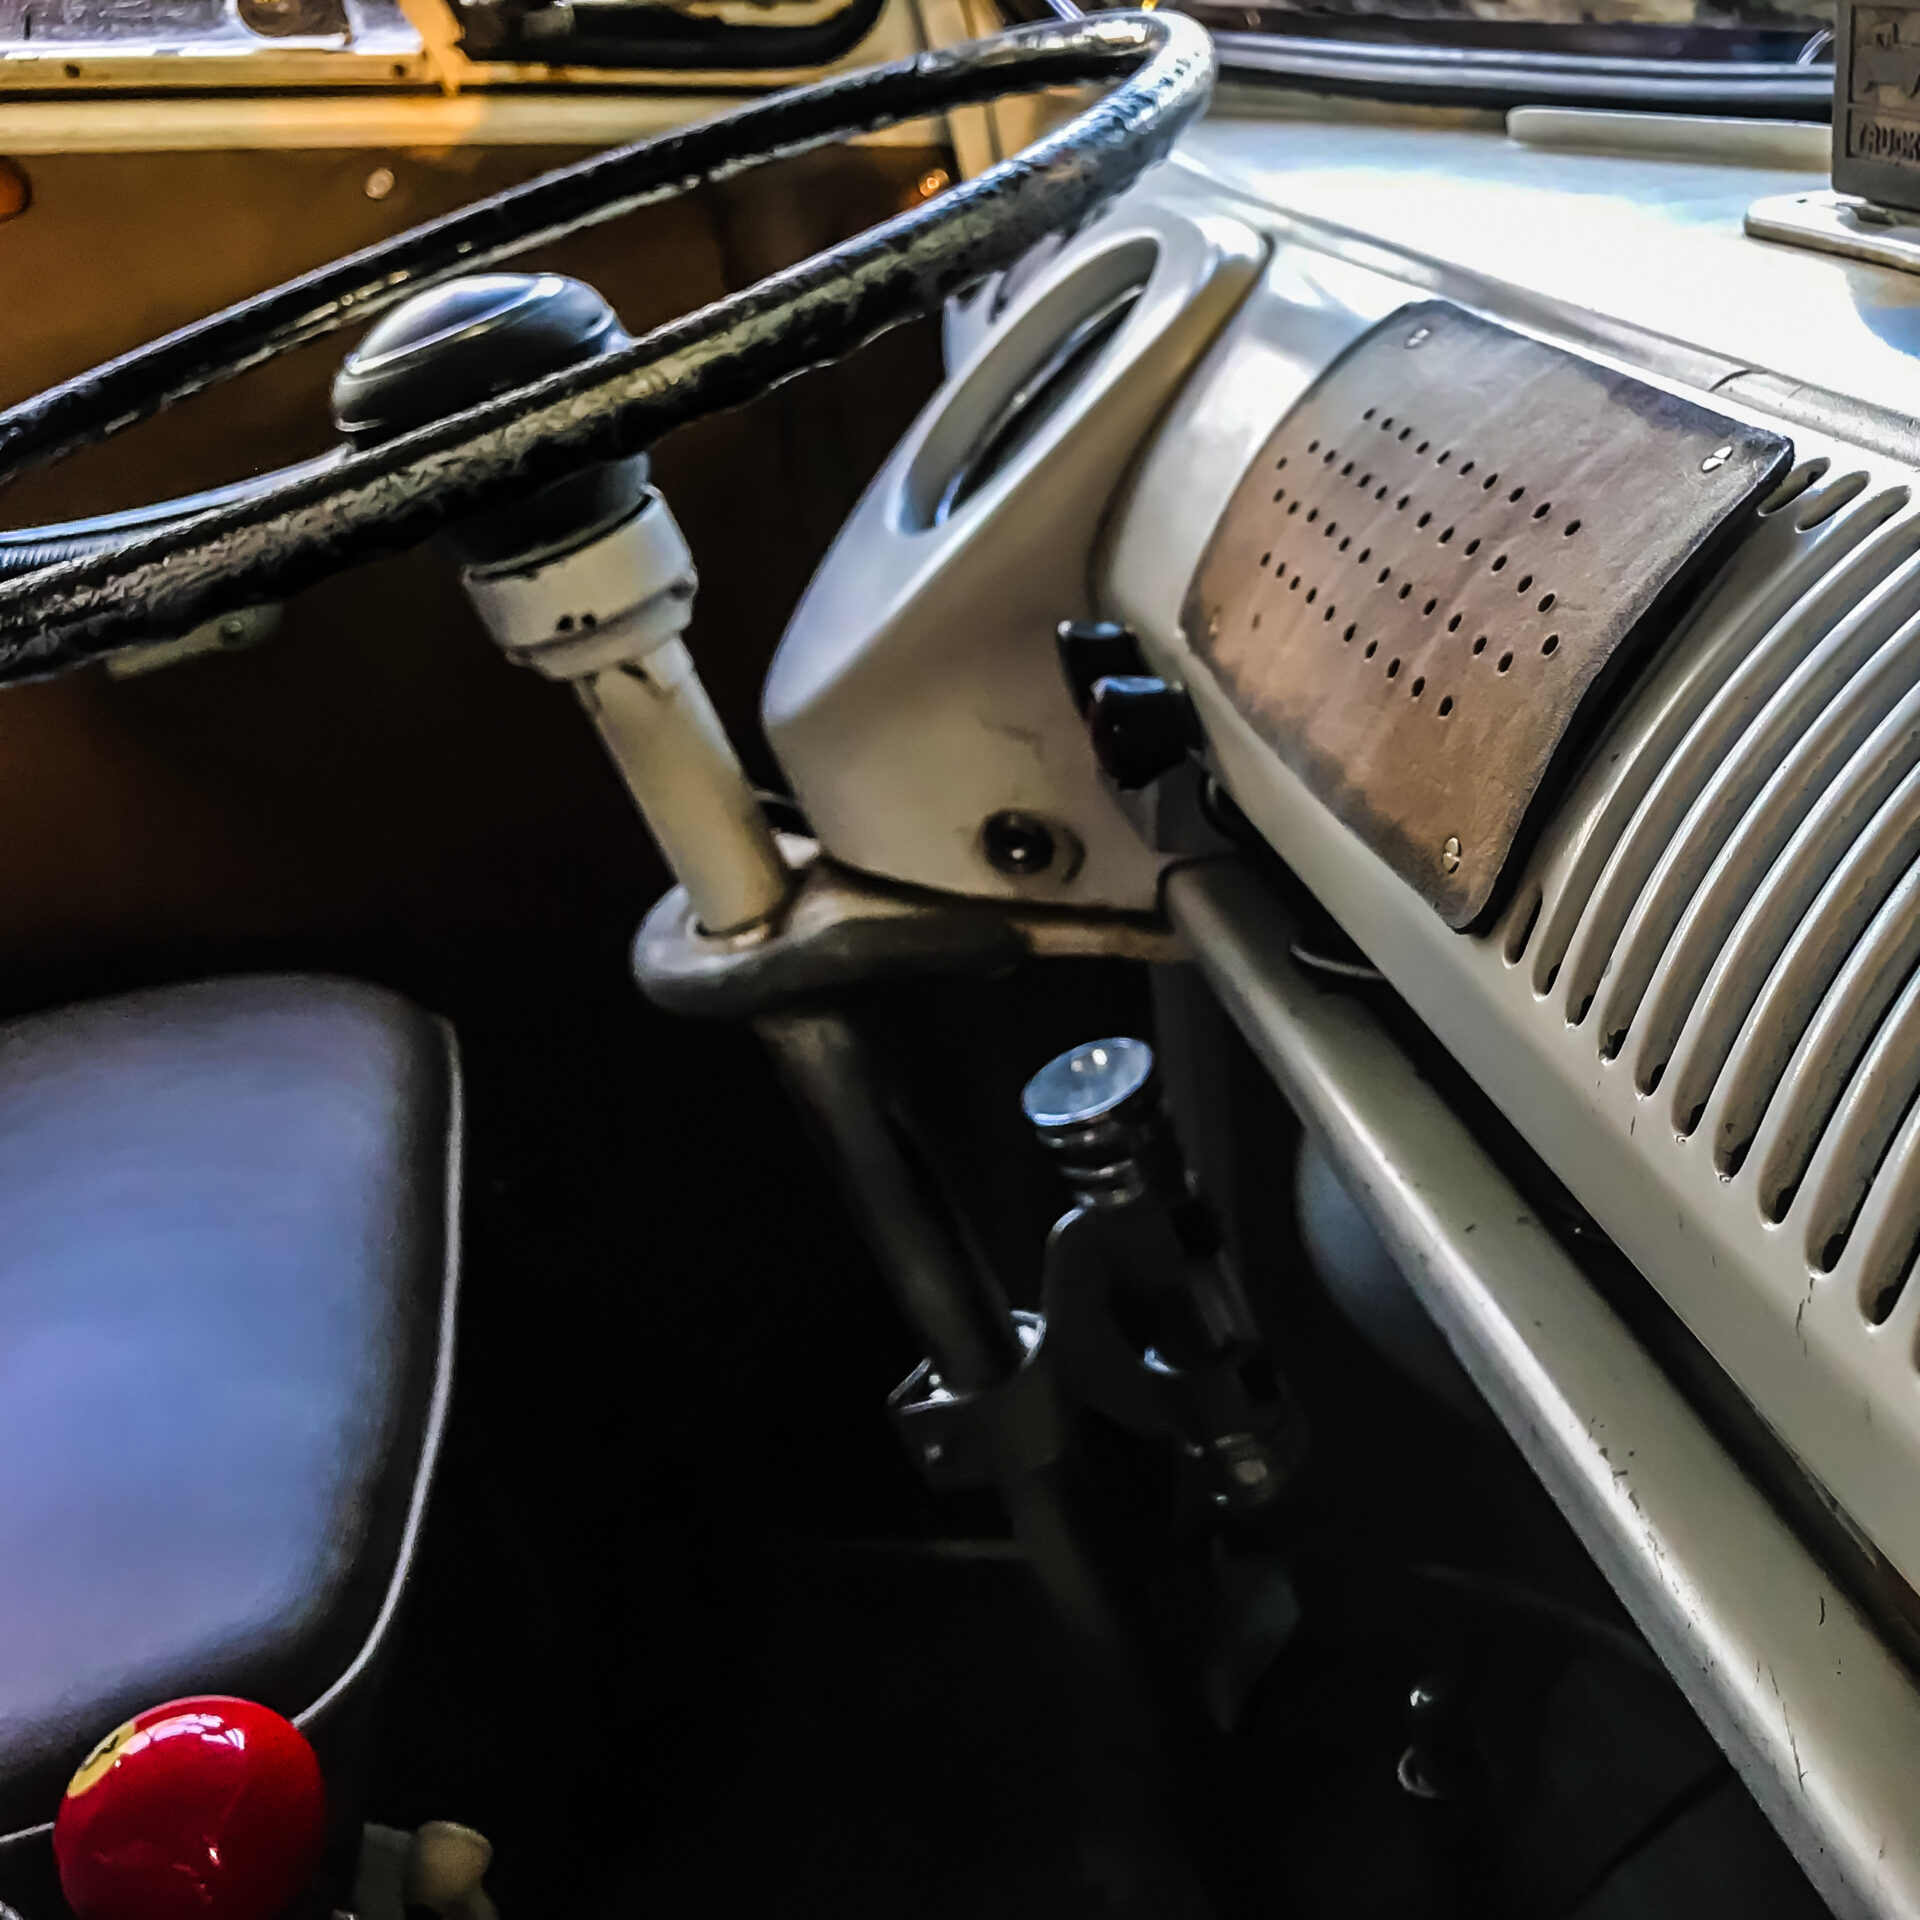 Vintage VW Double Cab Bus Interior - Junk In This Truck